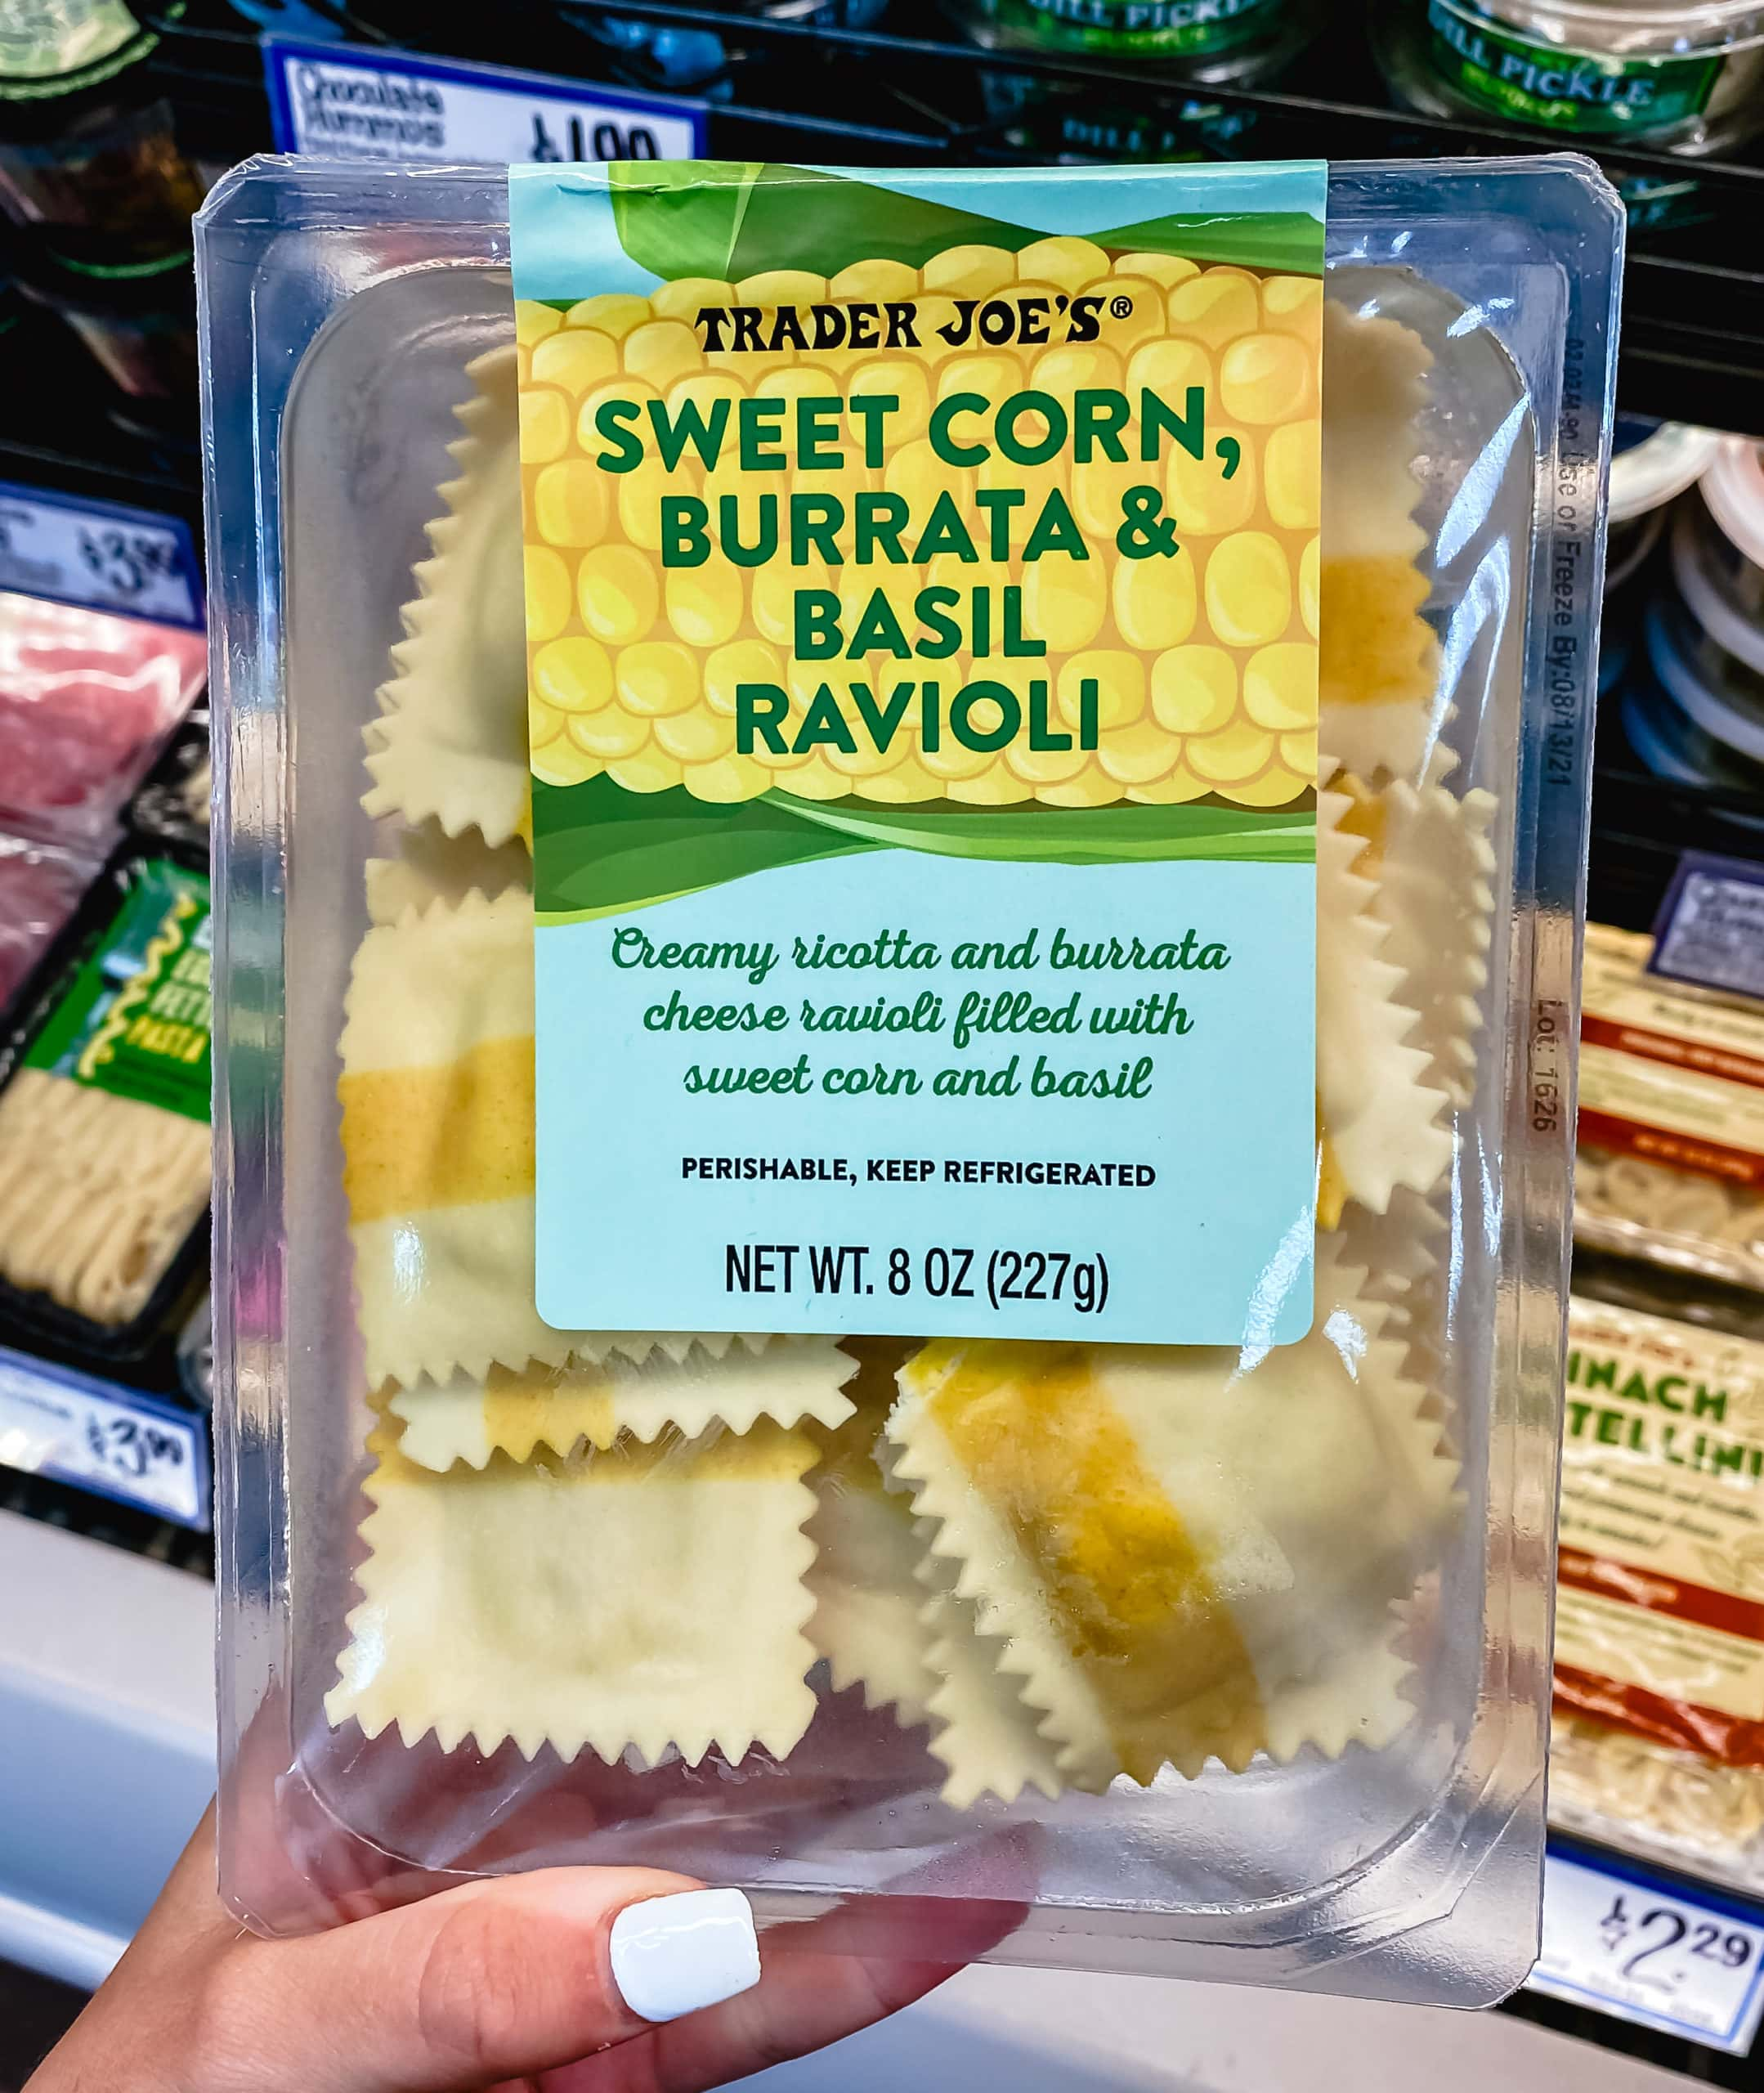 Sweet Corn and Burrata, and Basil Ravioli from Trader Joe's. The Best Foods to Buy from Trader Joe's.